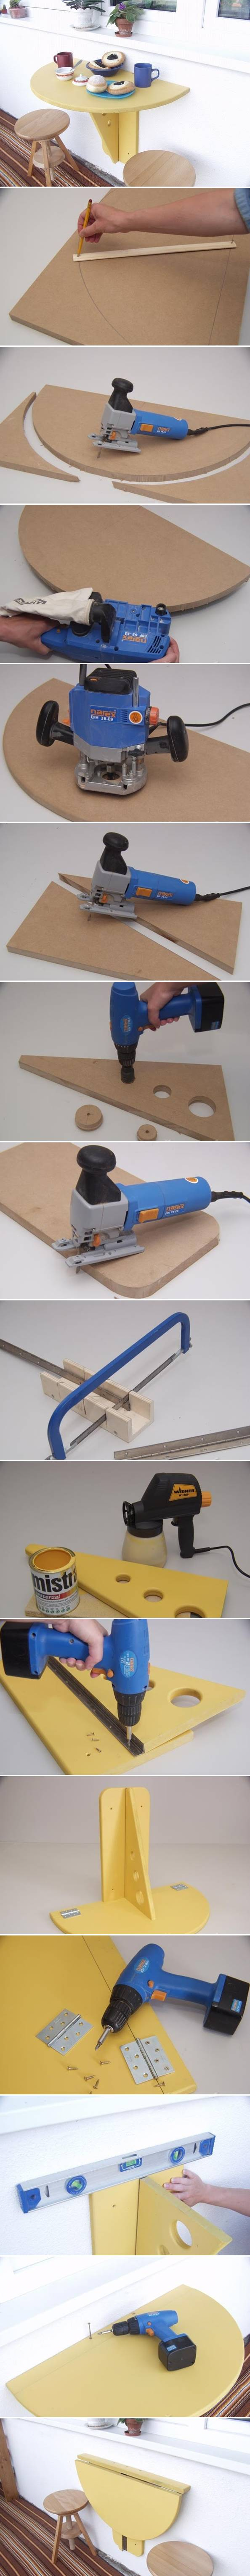 ... outdoor Folding picnic Table step by step DIY tutorial instructions